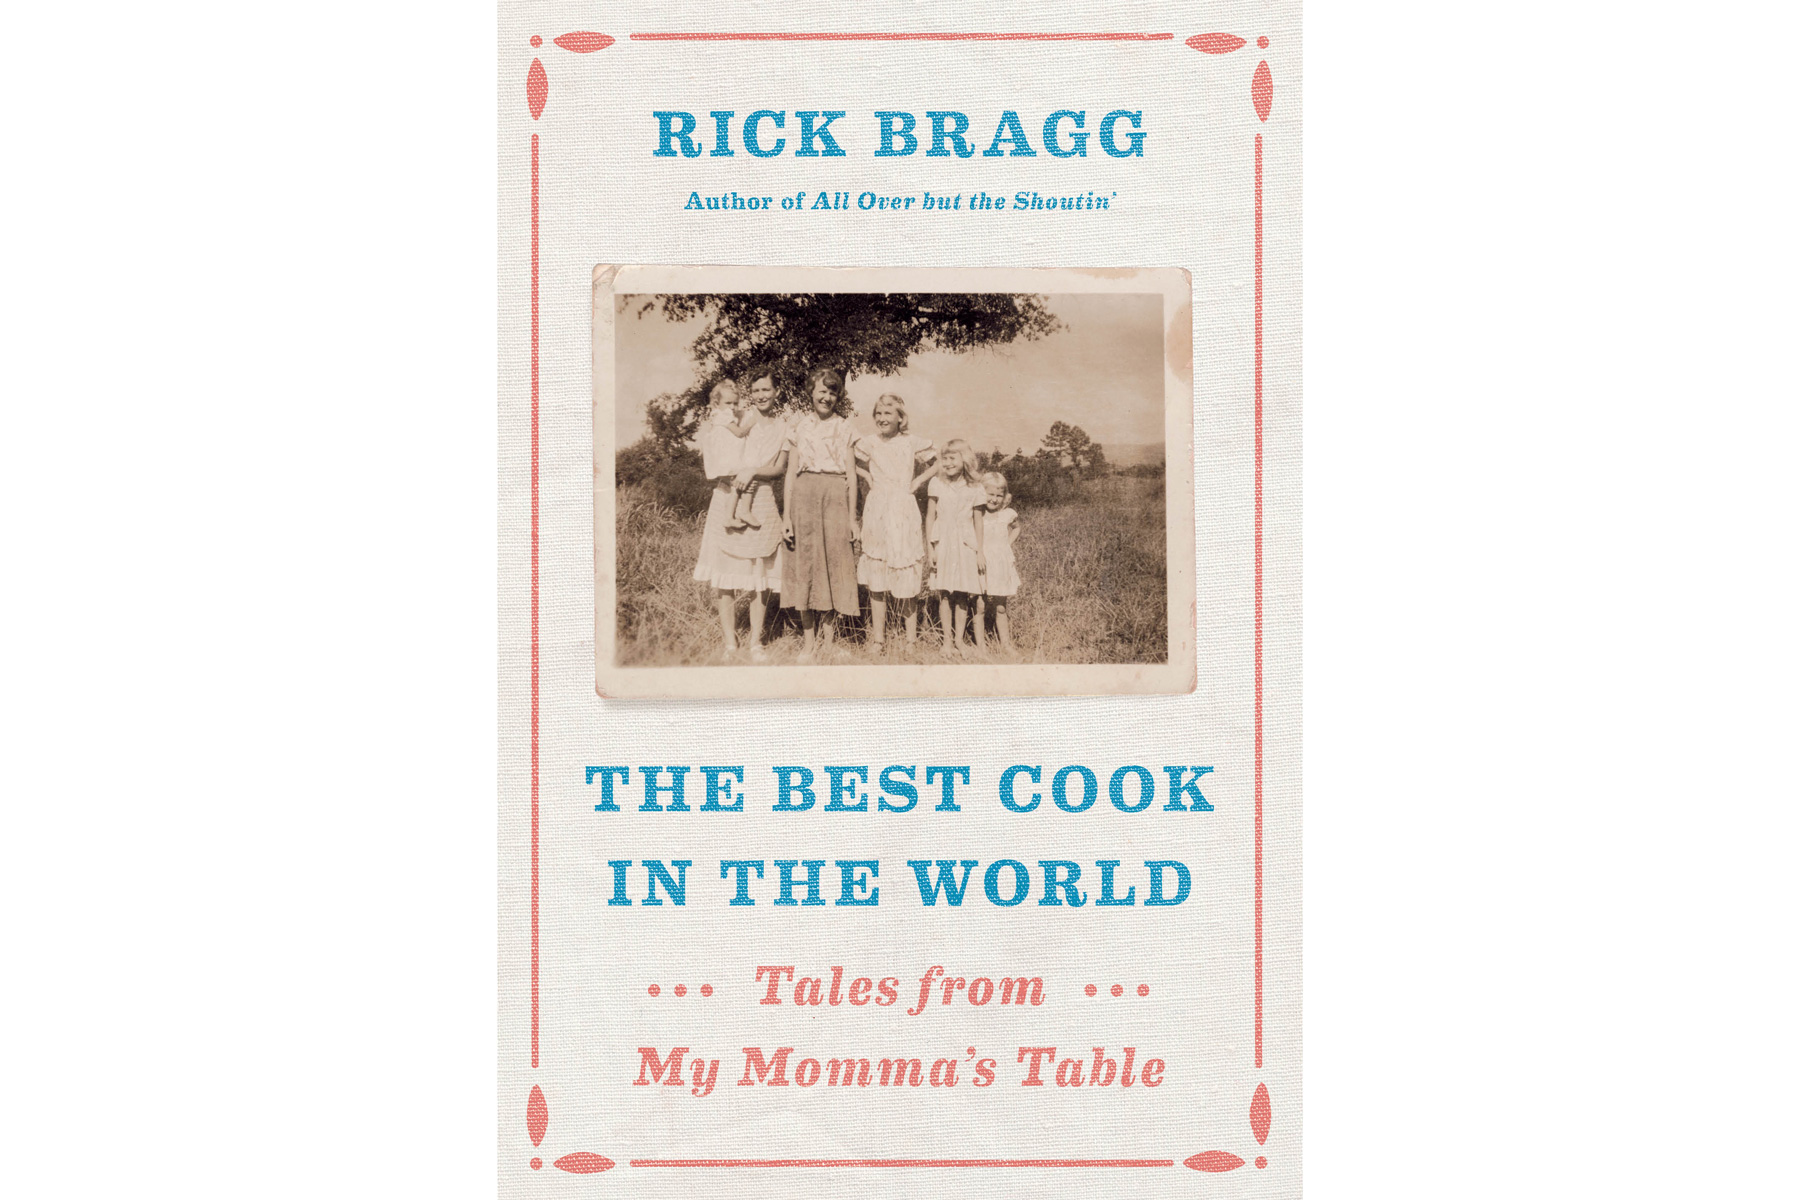 The Best Cook in the World, by Rick Bragg